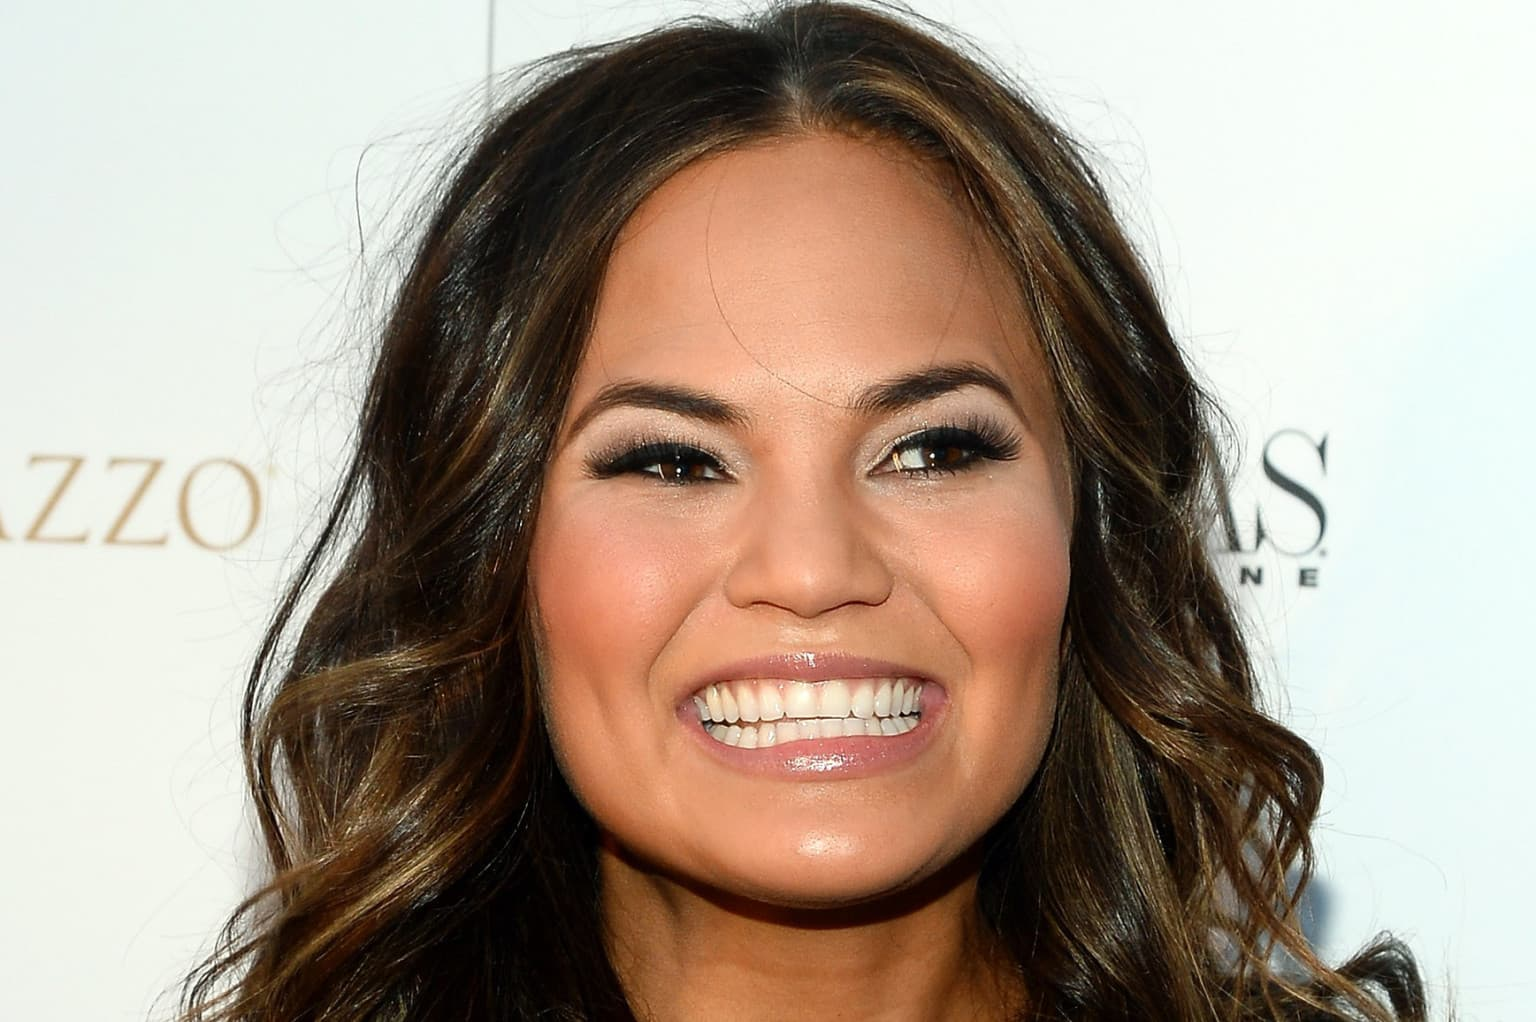 Chrissy Teigen Before After Plastic Surgery photo - 1